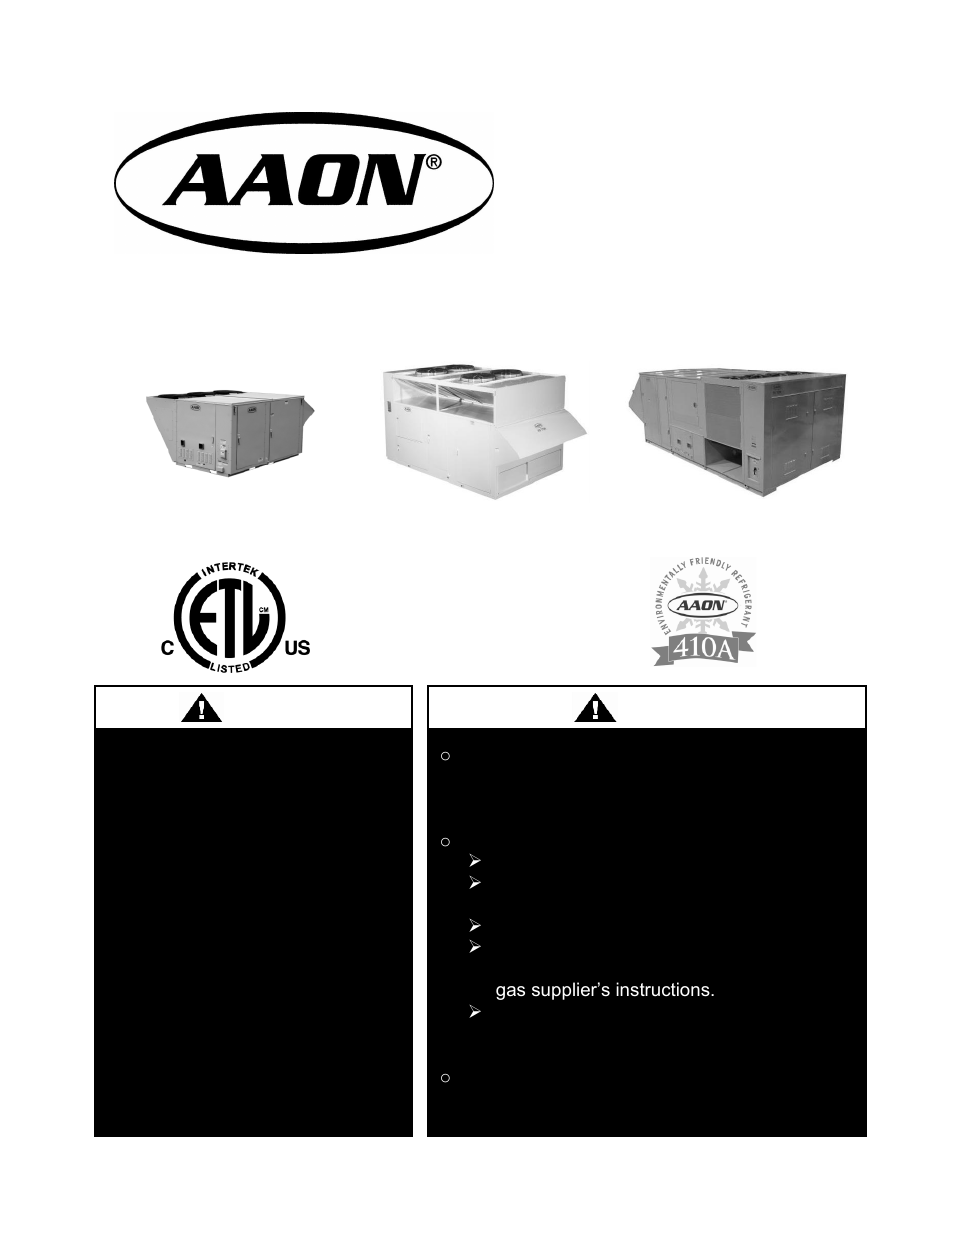 AAON RN-140 User Manual | 116 pages | Also for: RN-130, RN-120, RN-105, RN-090,  RN-075, RN-070, RN-065, RN-060, RN-55, RN-050, RN-040, RN-031, RN-030, ...